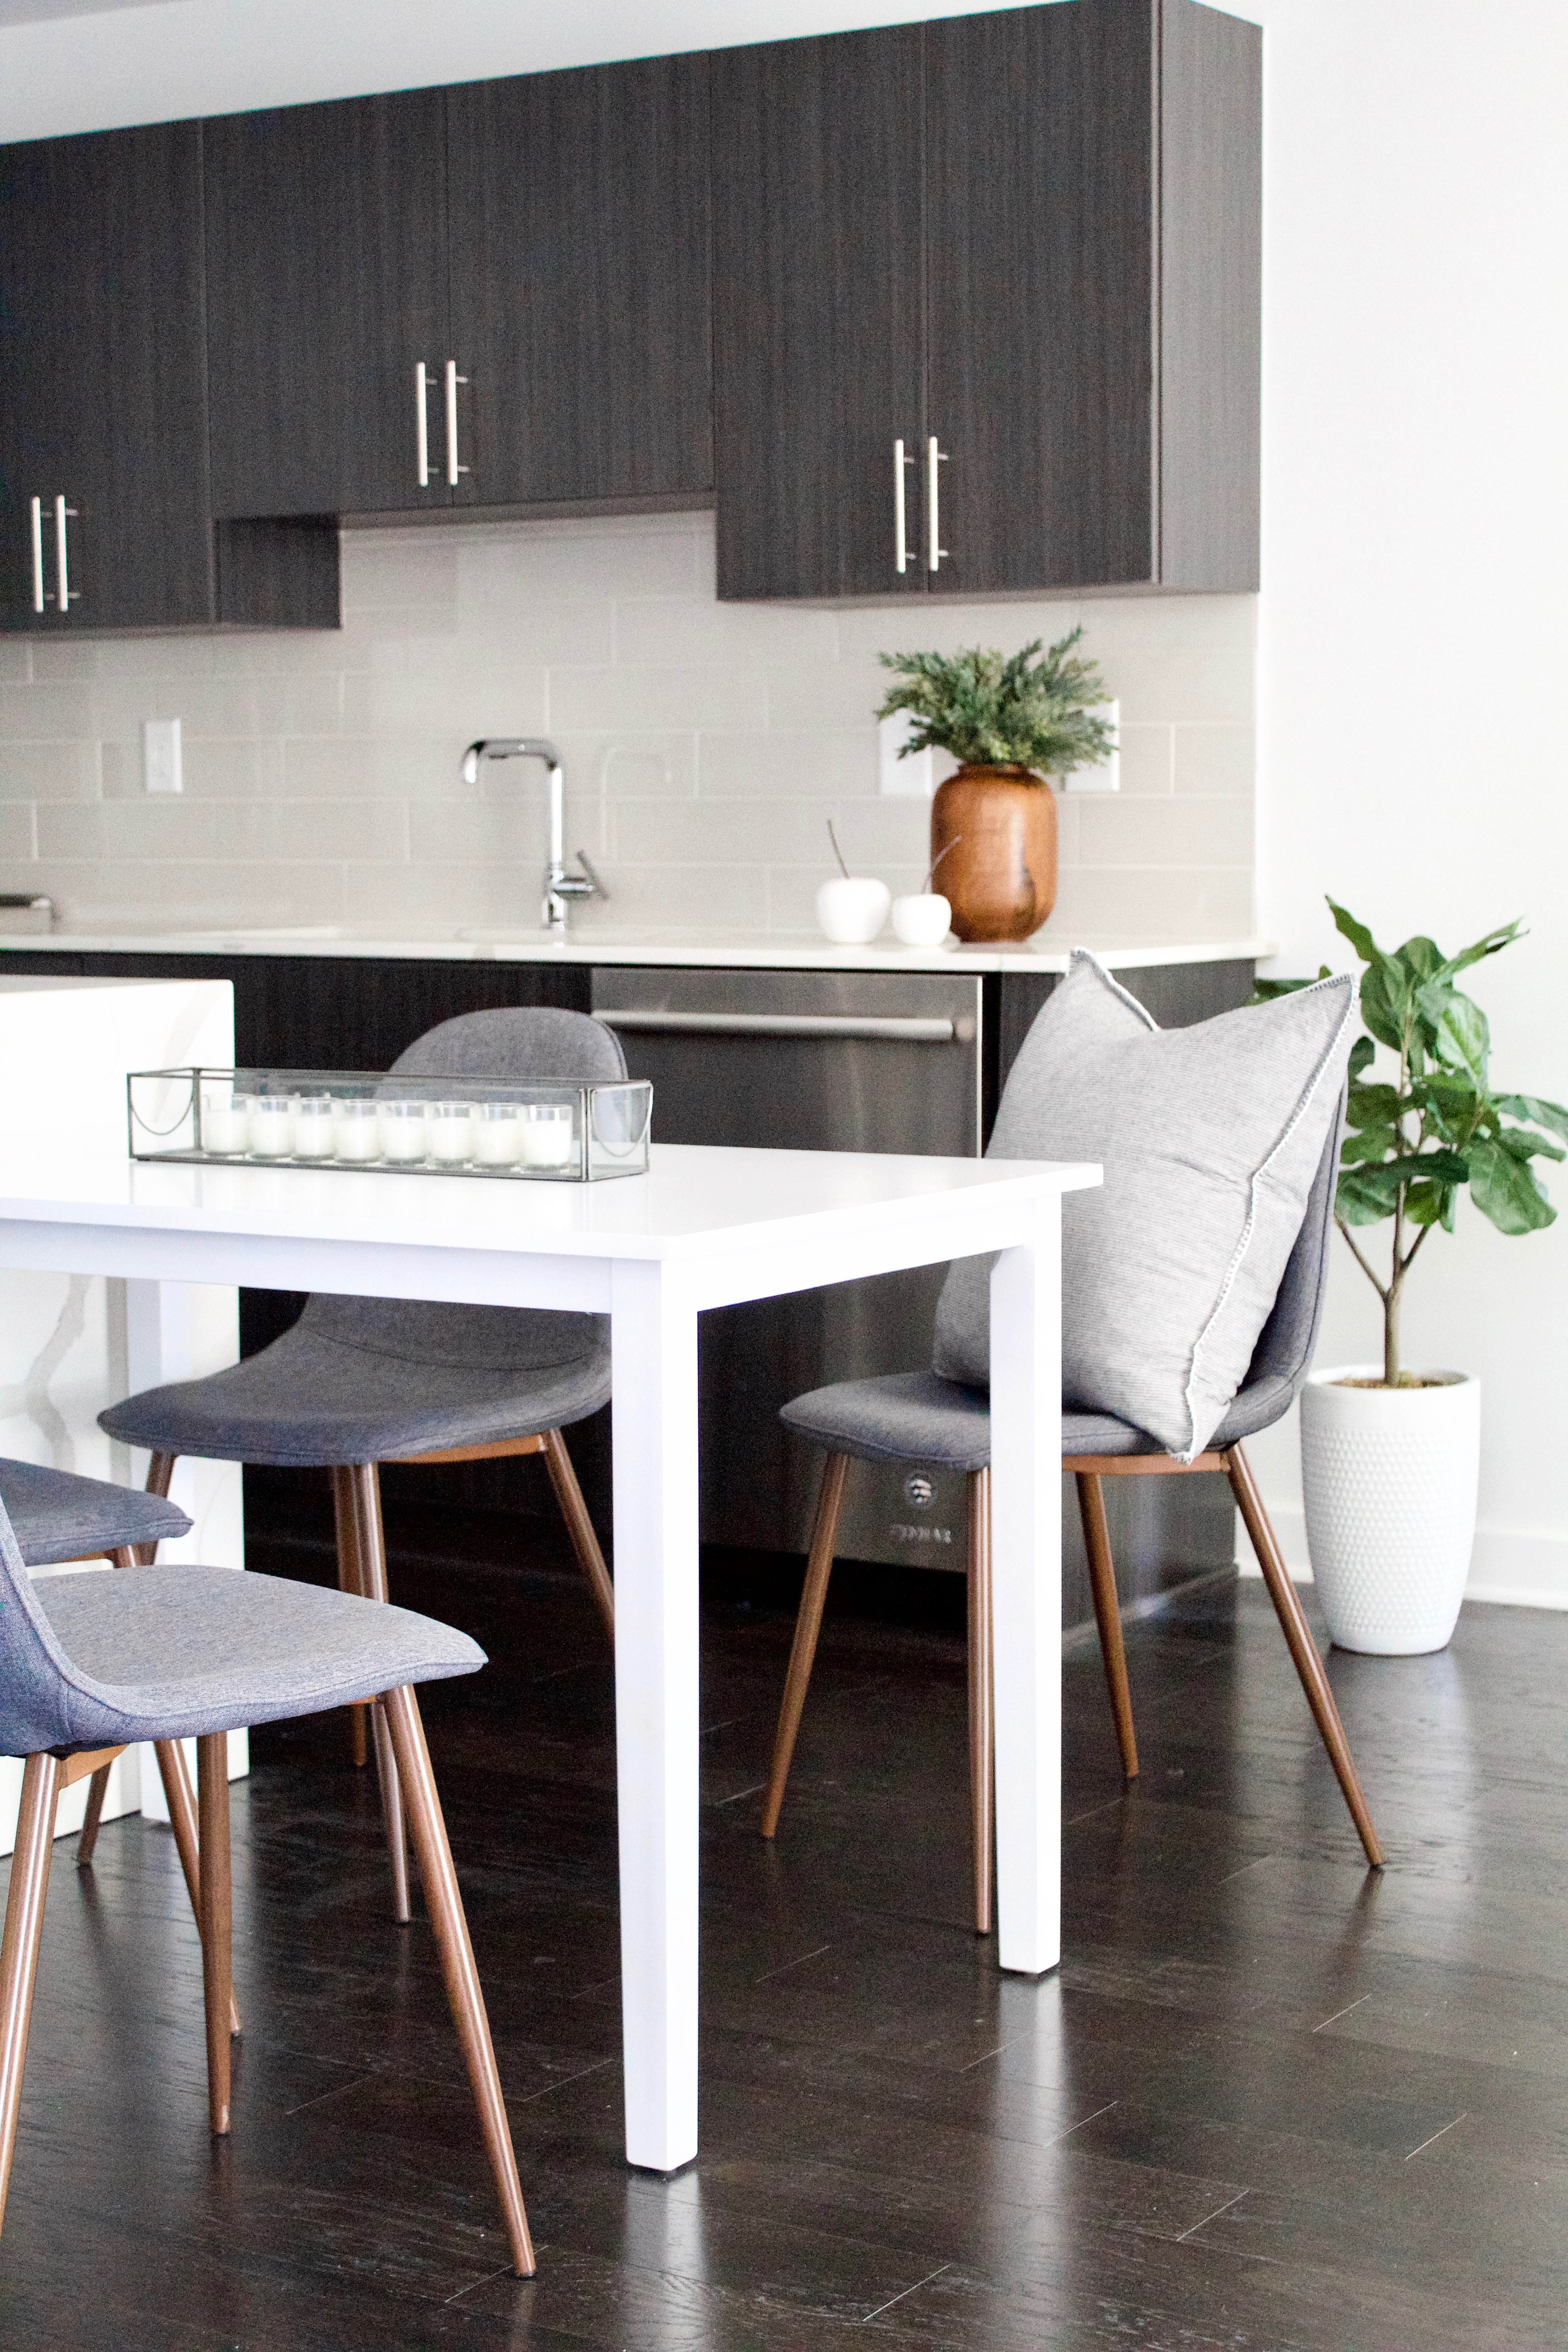 A Nashville, Tennessee Interior Design New Condo Eat-In Kitchen